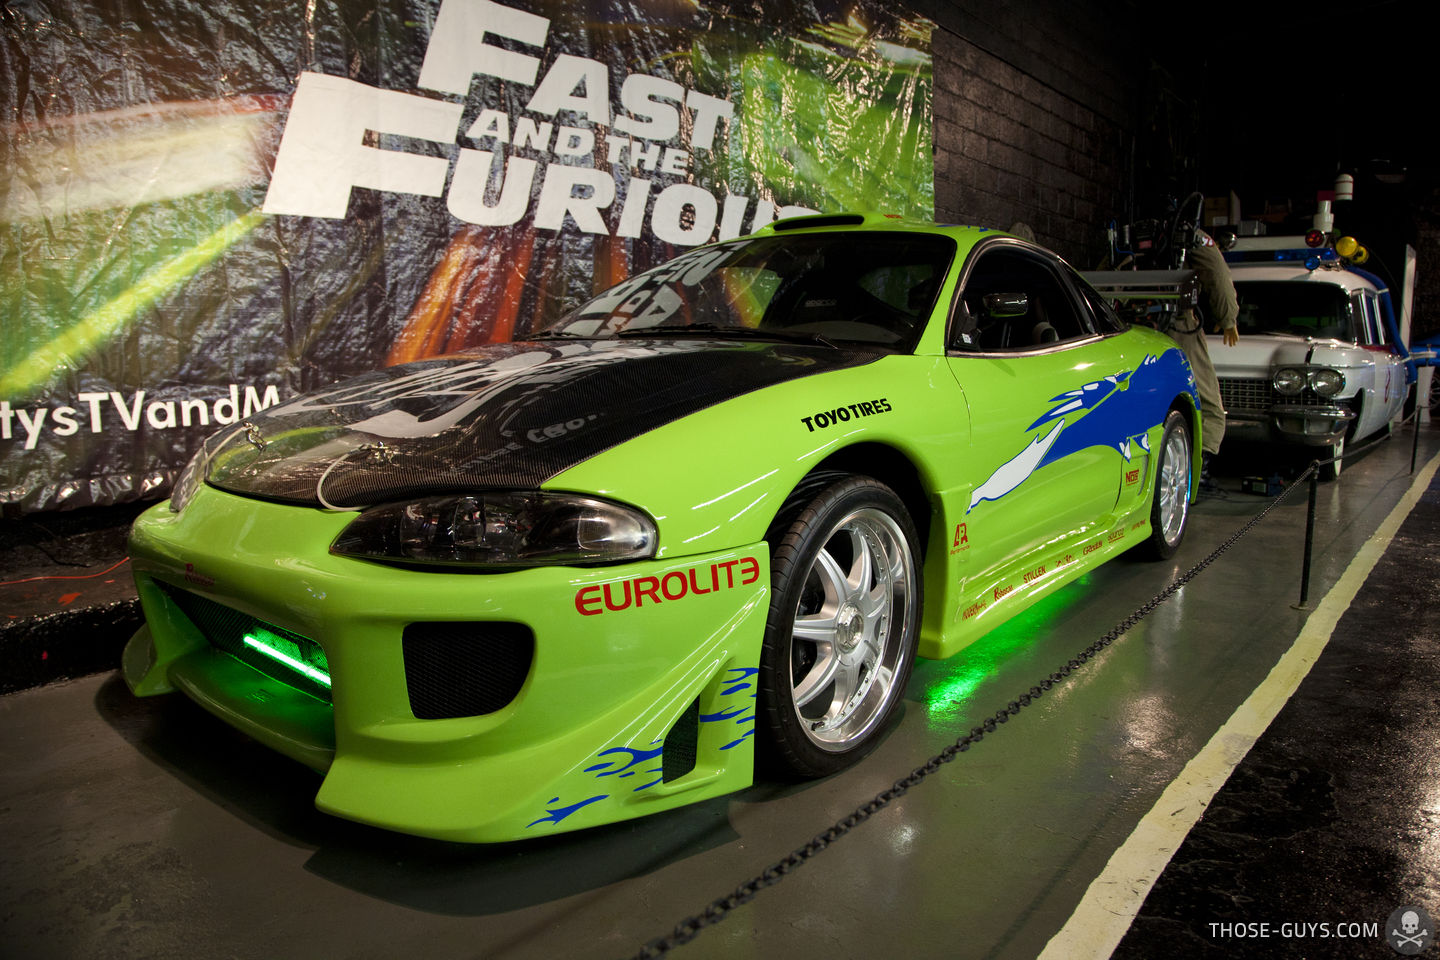 The Cult Fast And Furious Eclipse For Sale One Of The Most